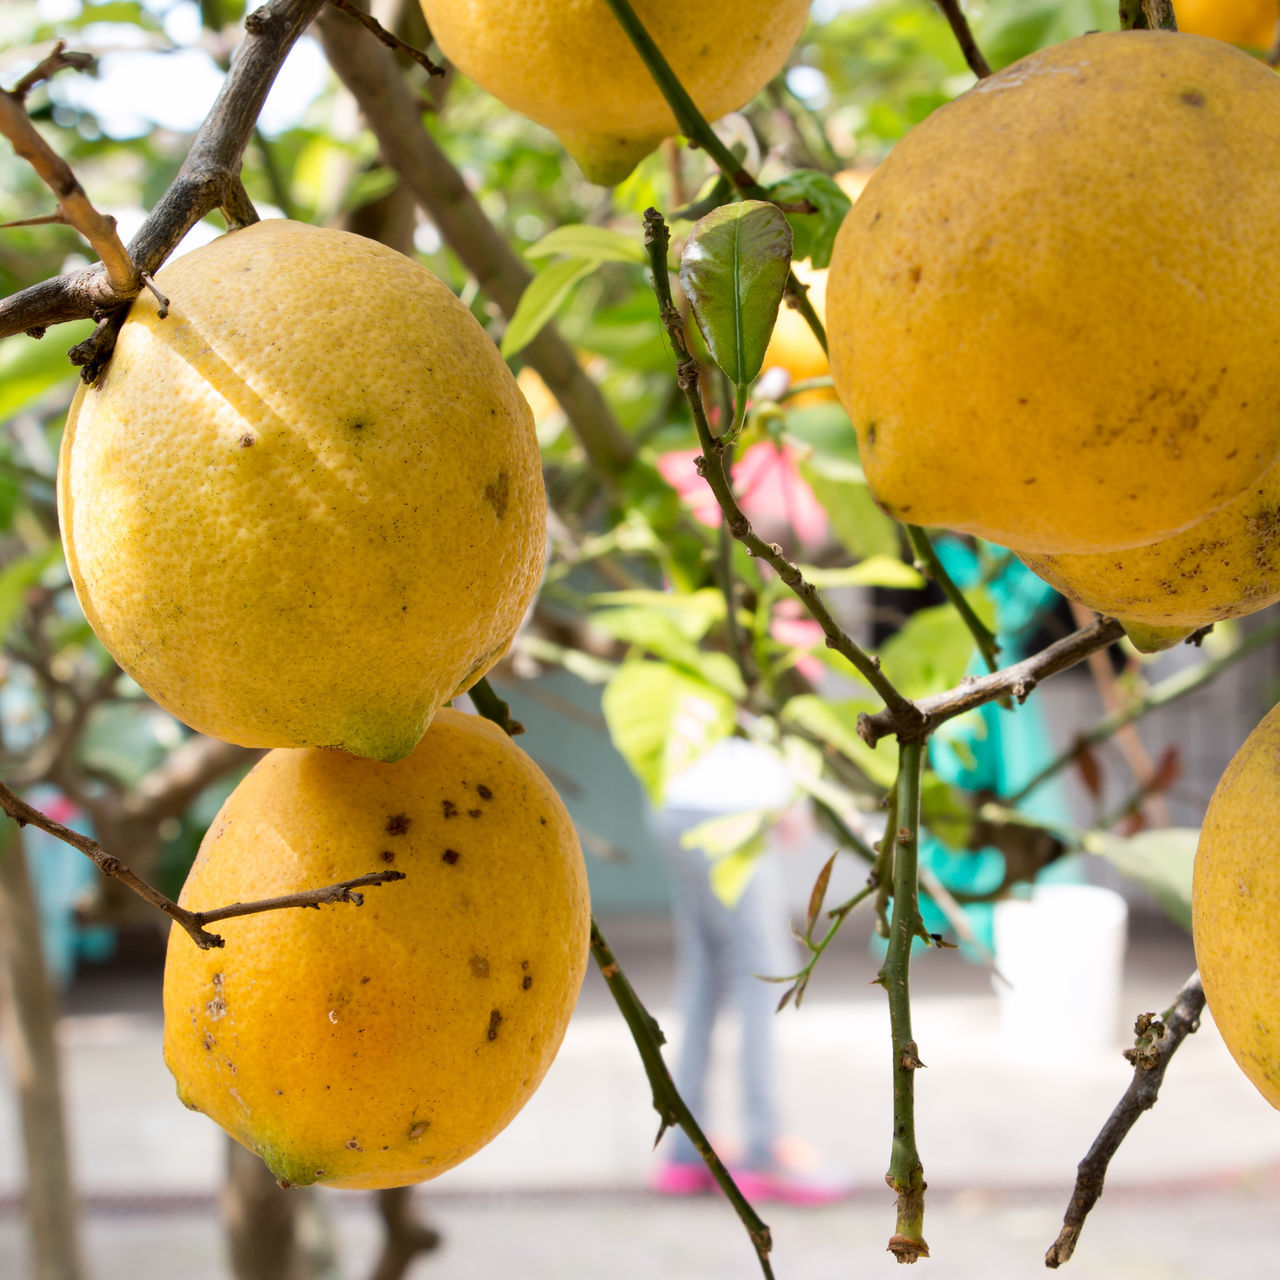 Agriculture Branch Citrus Fruit Close-up Day Food Food And Drink Freshness Fruit Fruit Tree Grapefruit Growth Healthy Eating Healthy Lifestyle Juicy Lemon Lemon Tree Nature No People Outdoors Sour Taste Tree Vitamin Yellow